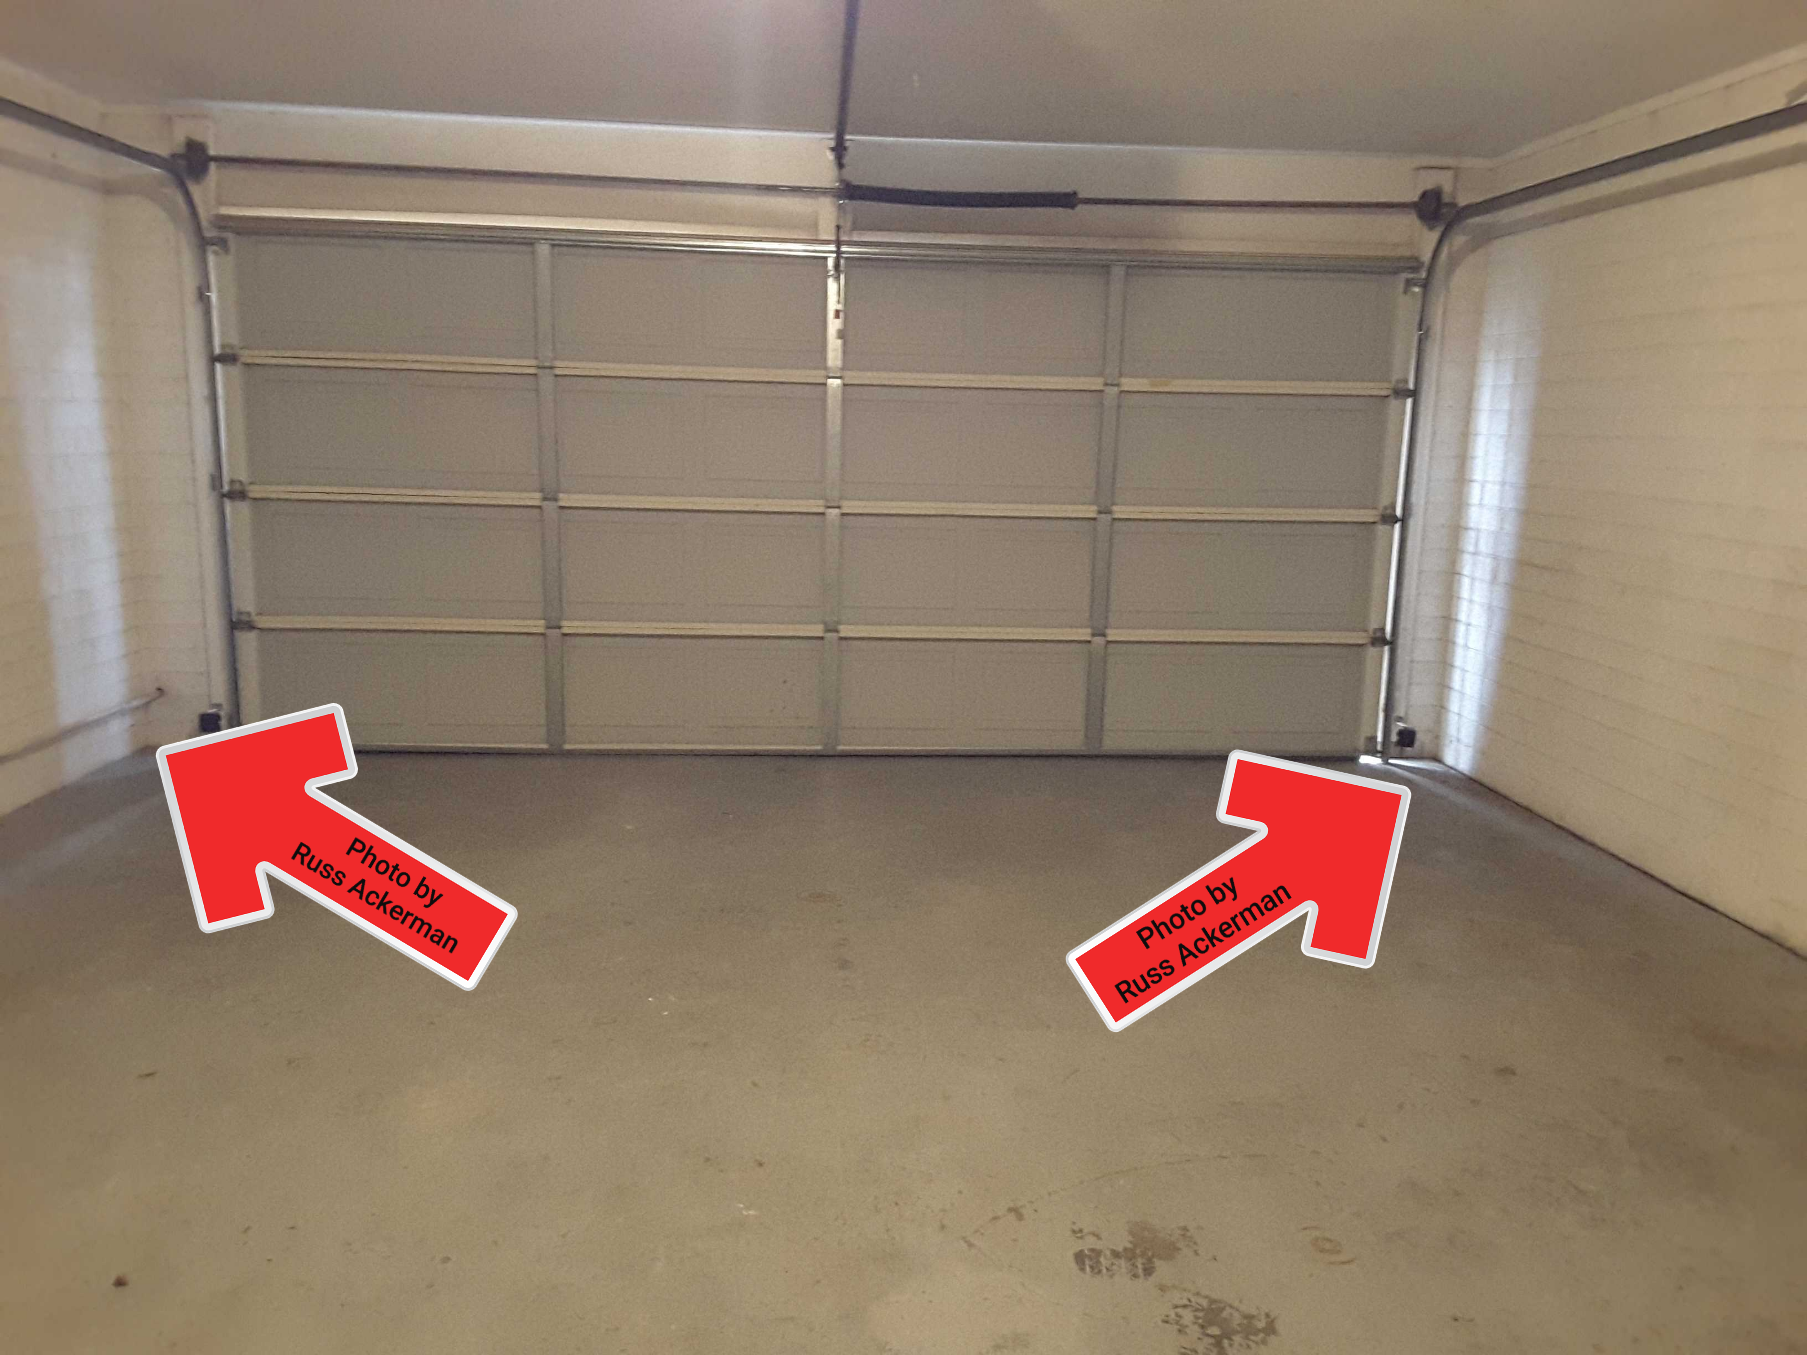 Missing weatherstripping at garage doors will allow a lot of dust in your garage during our summer haboobs. It will also let in unwanted heat, bugs and pests.